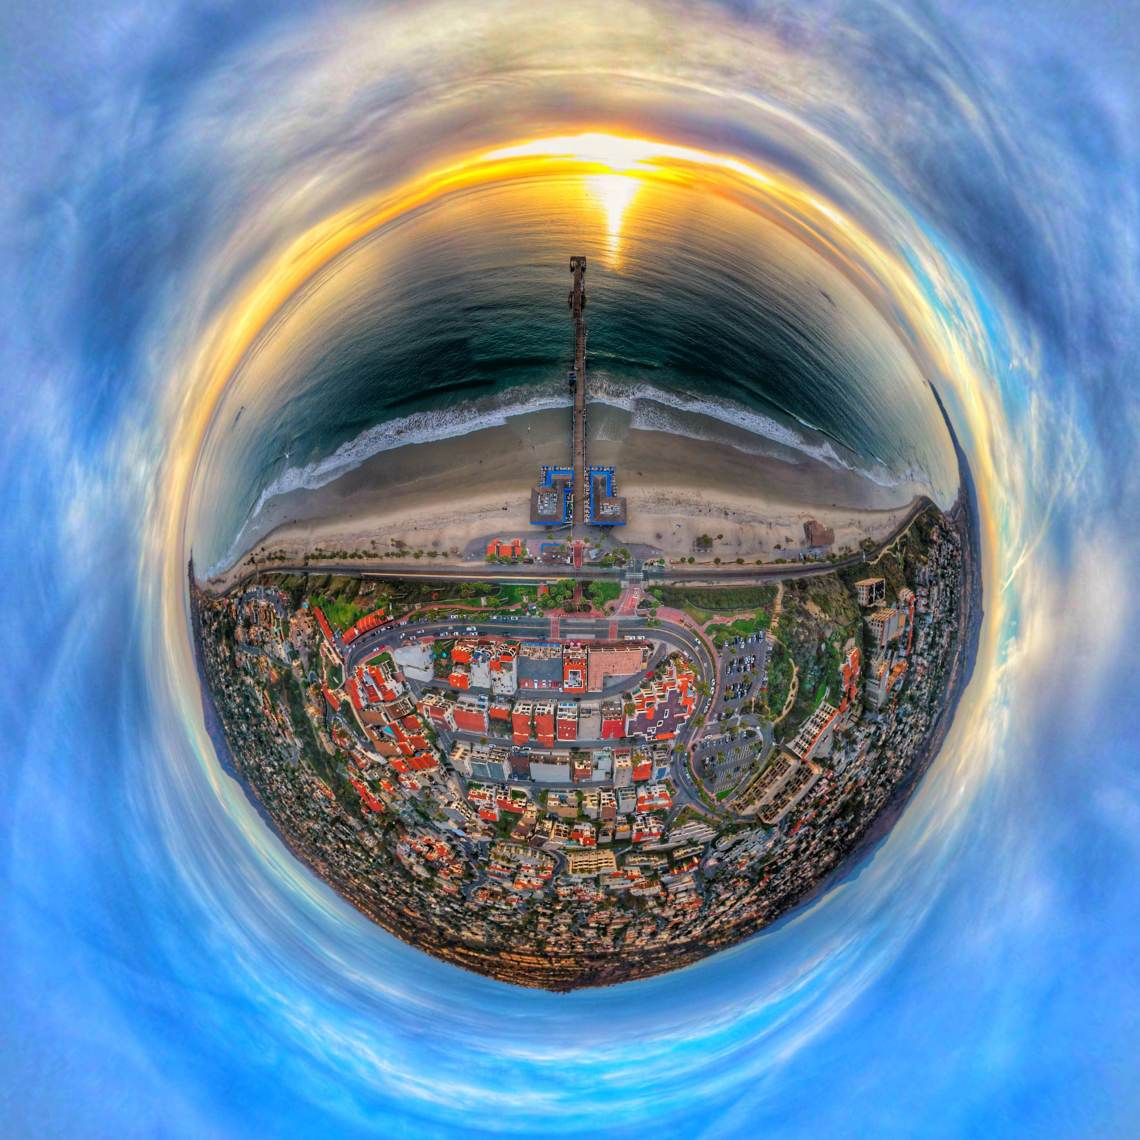 Tom Prince, on Instagram as @360prince, uses several wide-angle images to bend reality in his psychedelic images. Photos: Courtesy of Tom Prince